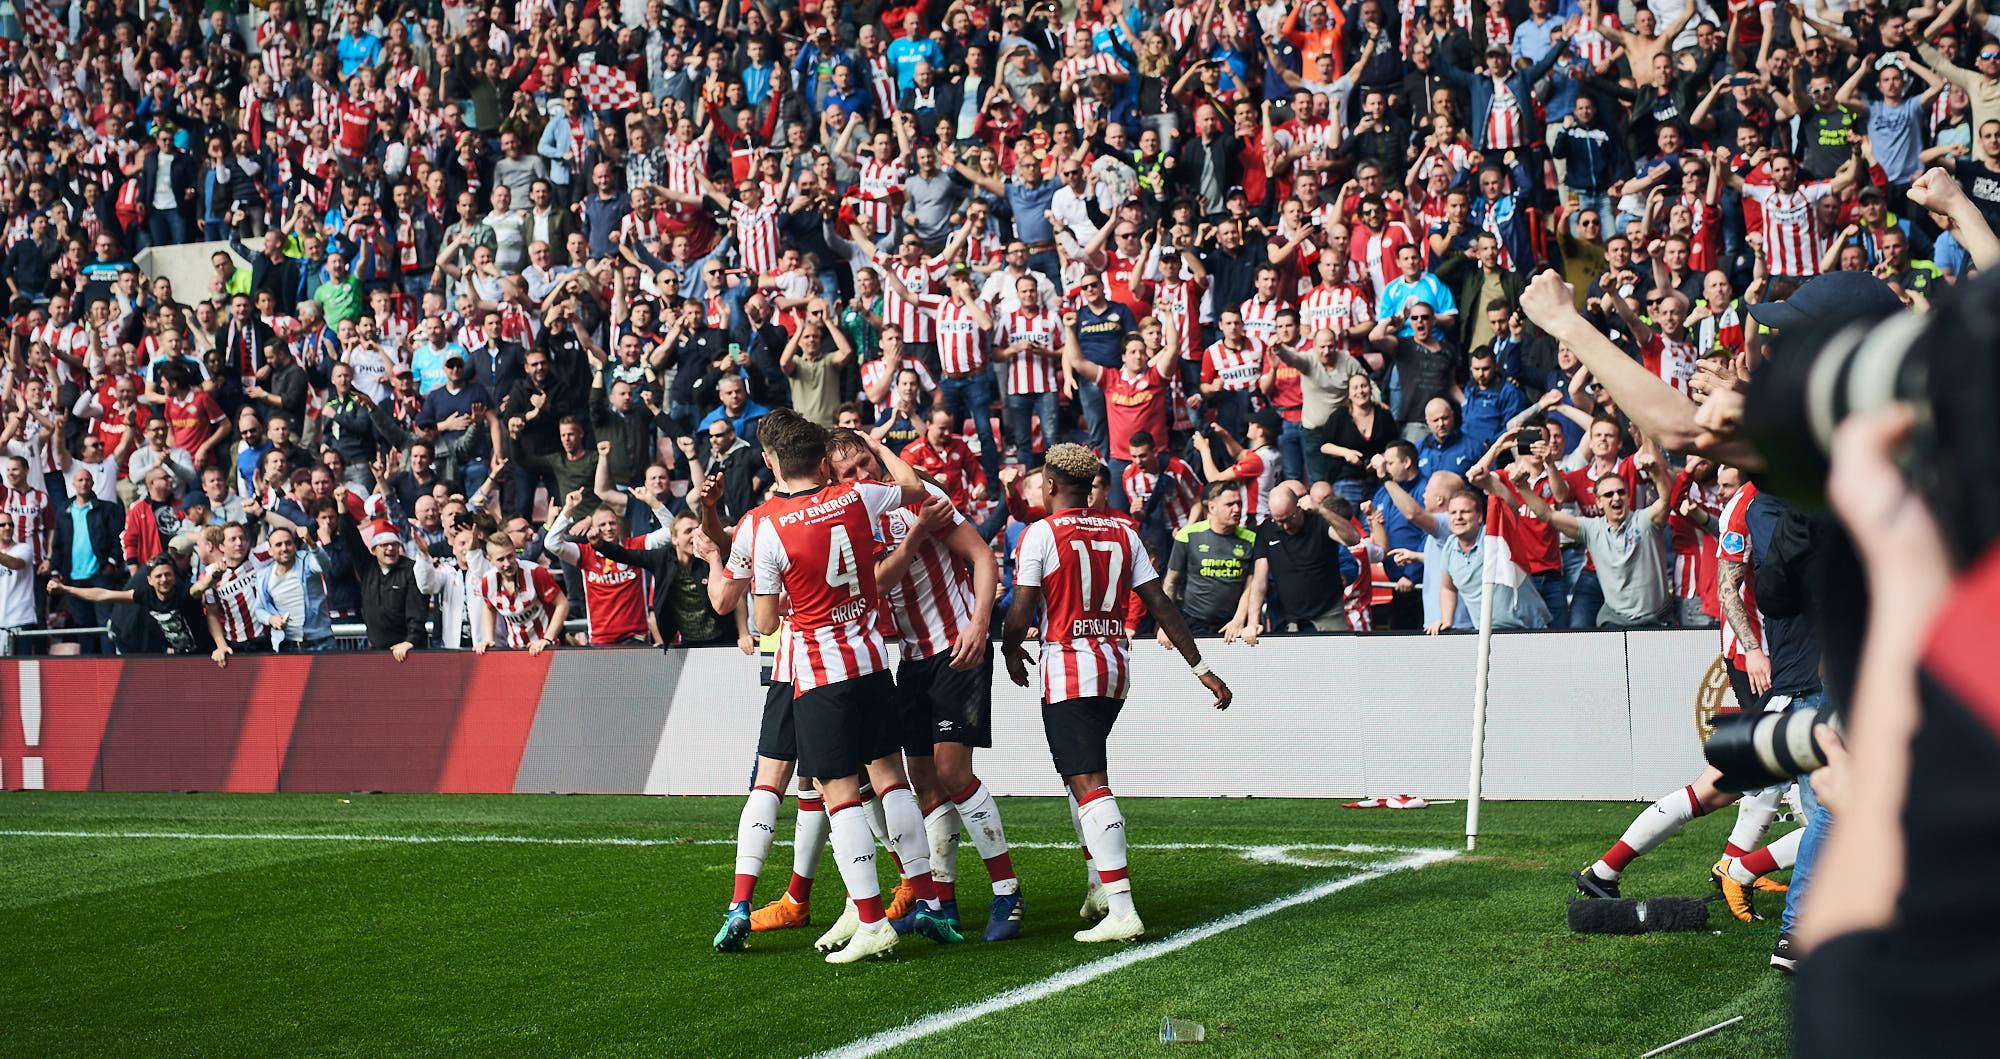 PSV football players celebrating a goal against Ajax